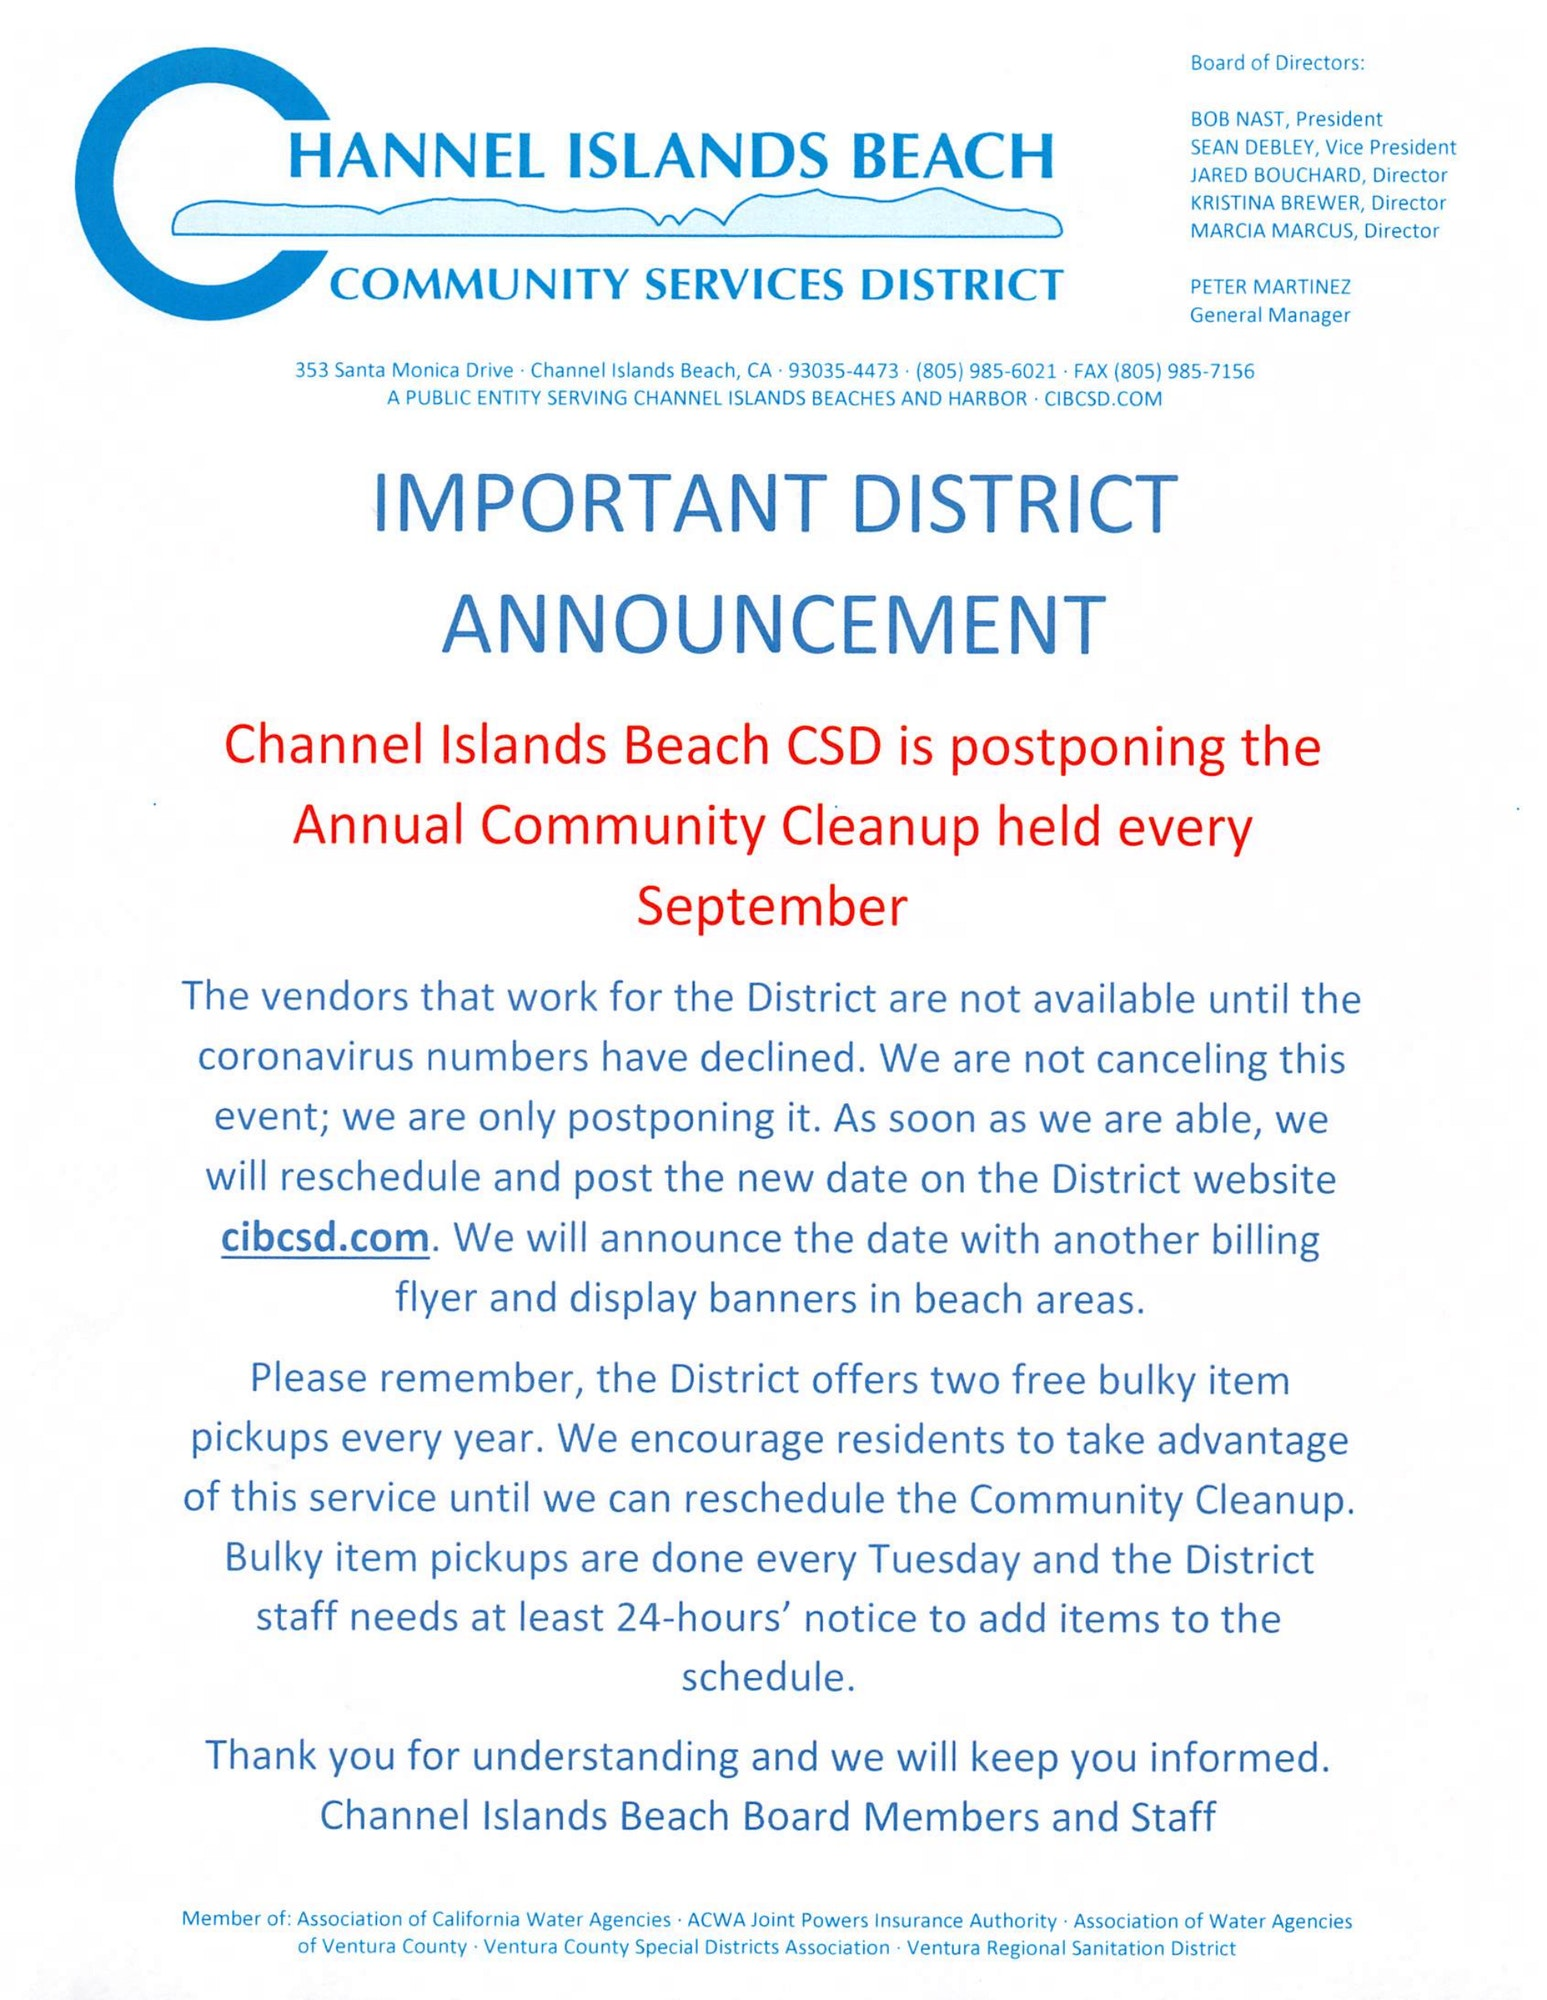 Community Cleanup is postponed